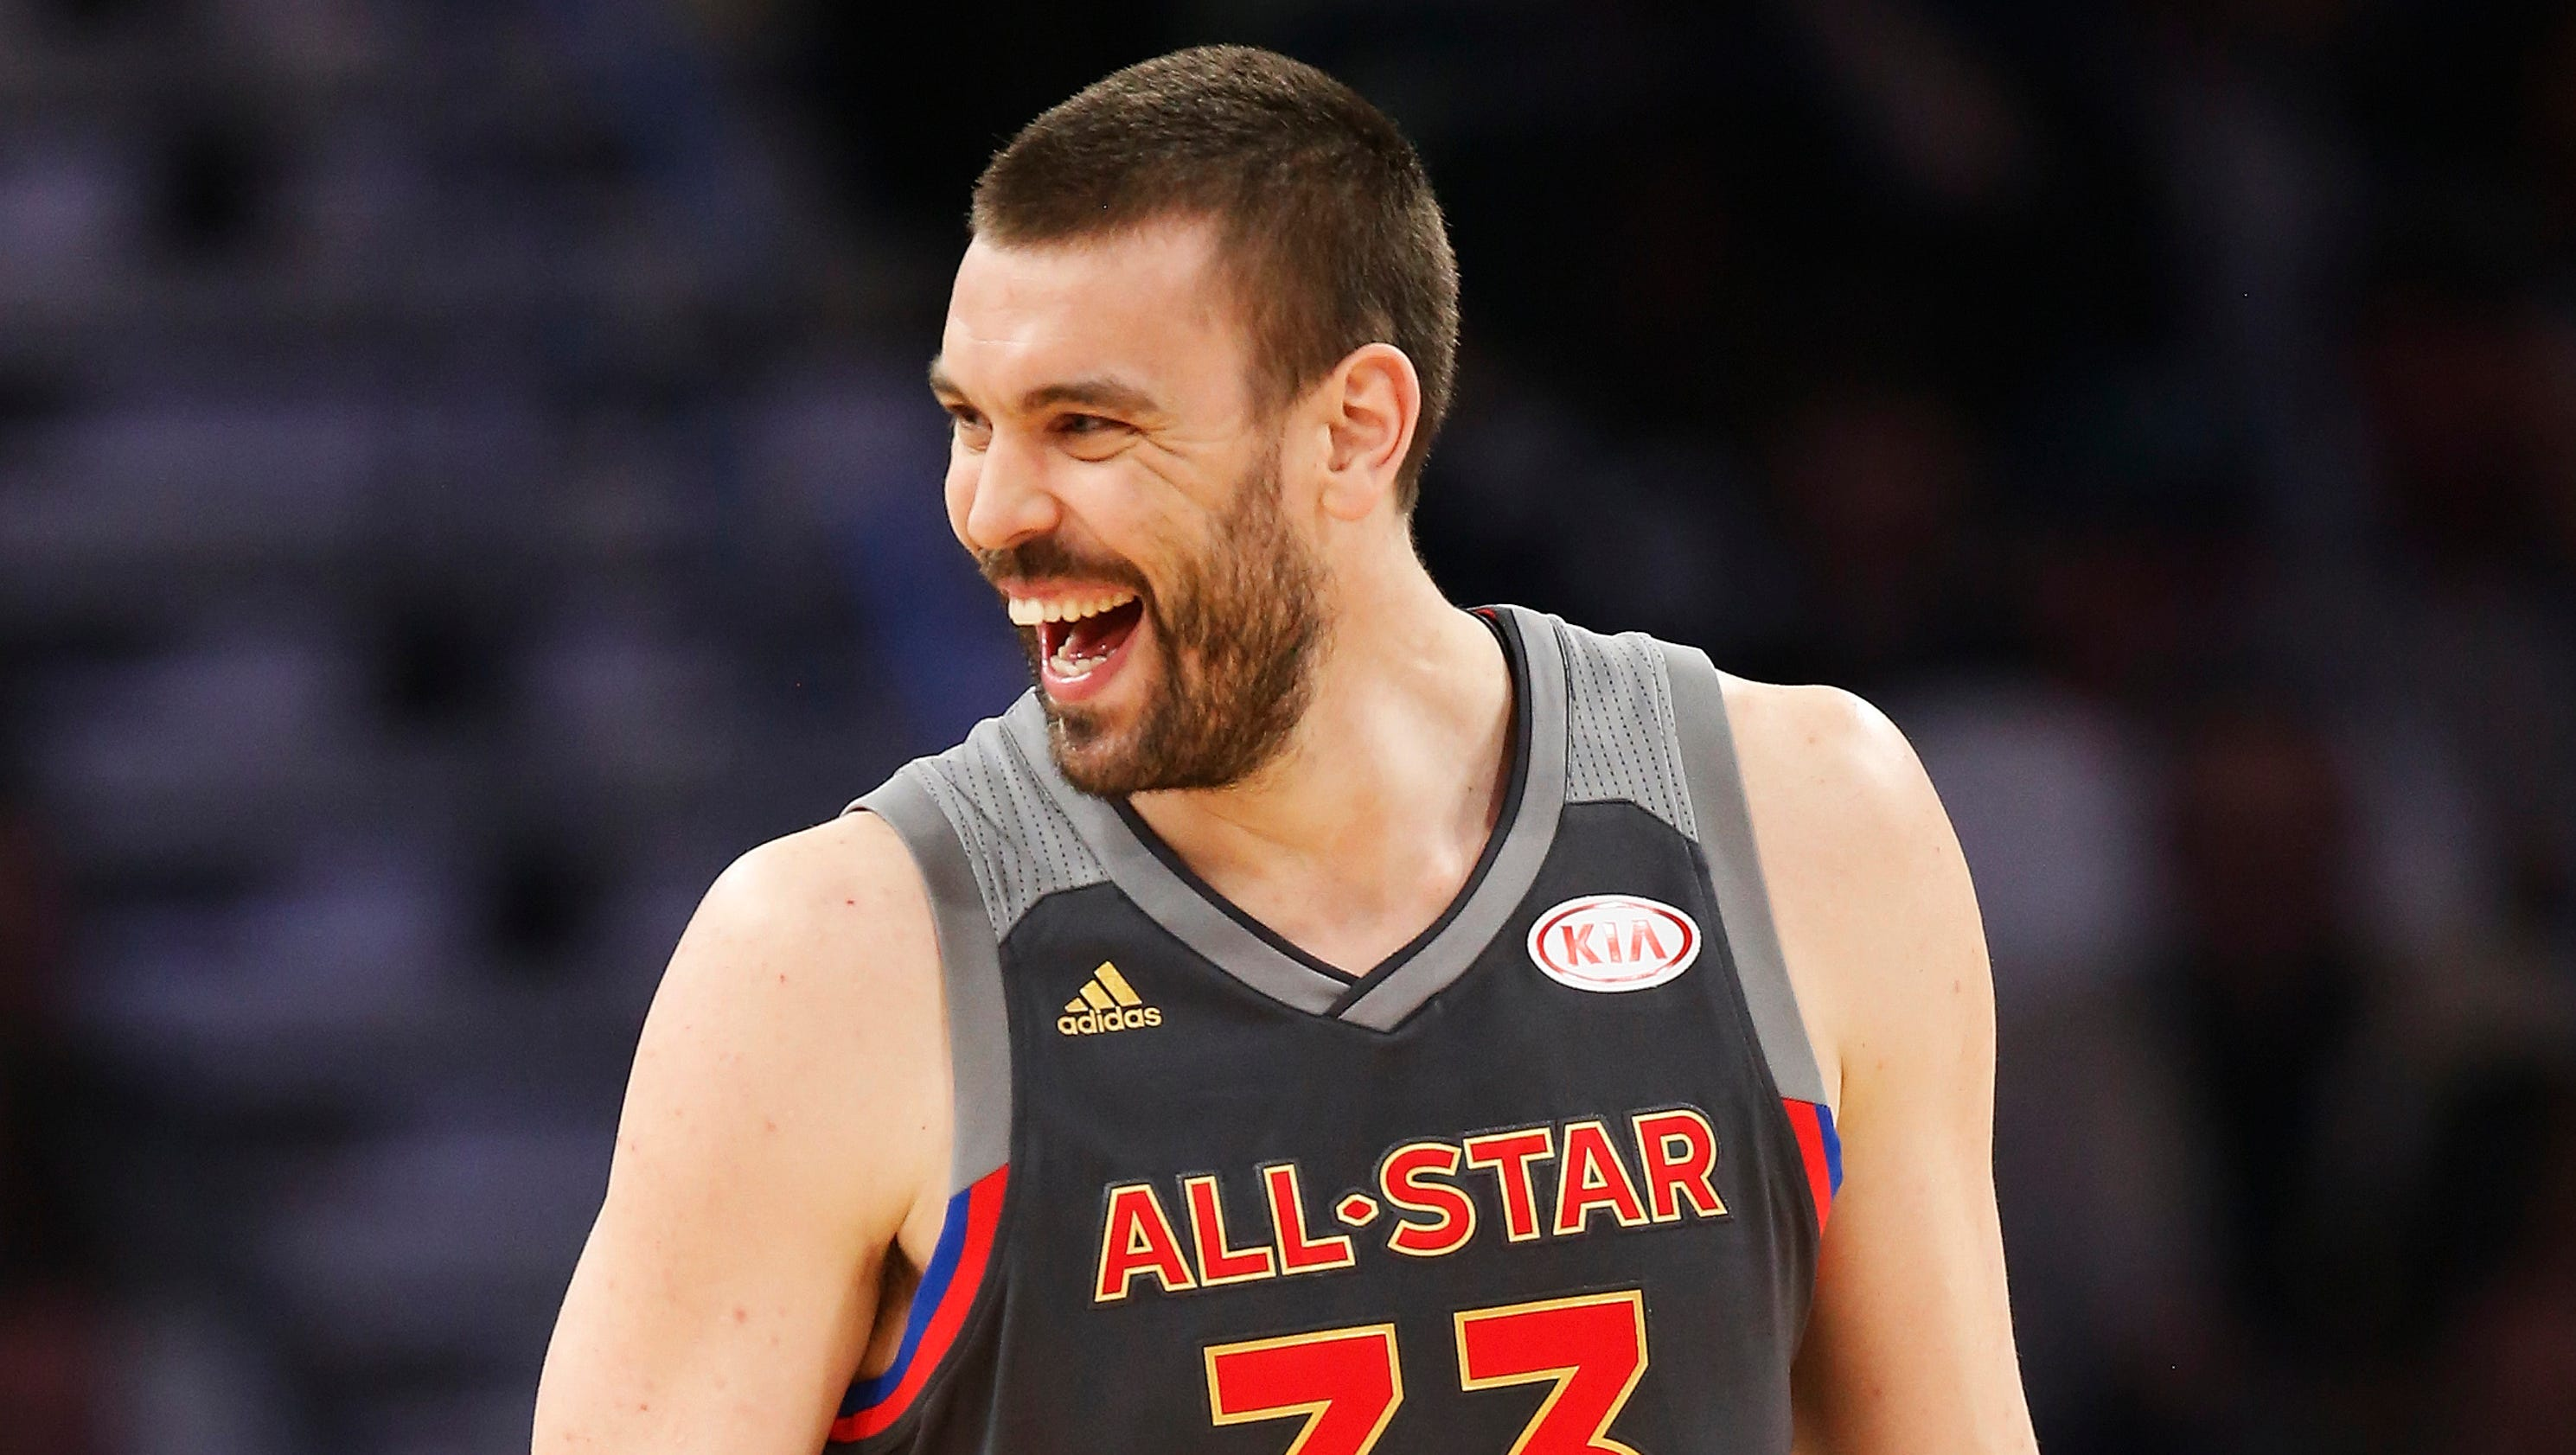 Marc Gasol at the NBA All-Star Game